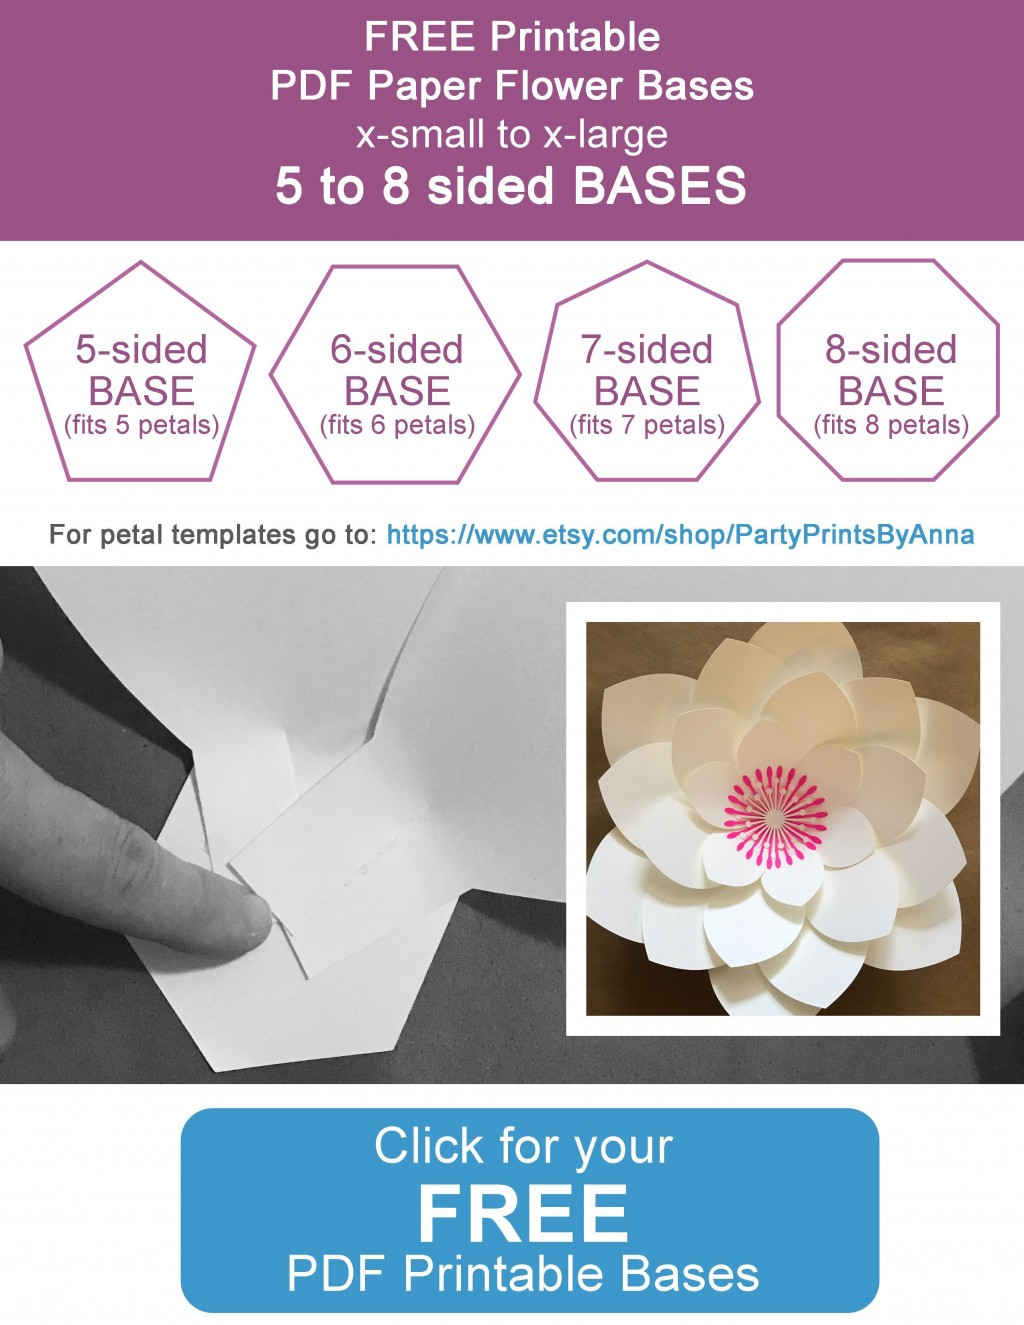 004 Awful Paper Rose Template Pdf Sample  Flower Giant Free CrepeLarge